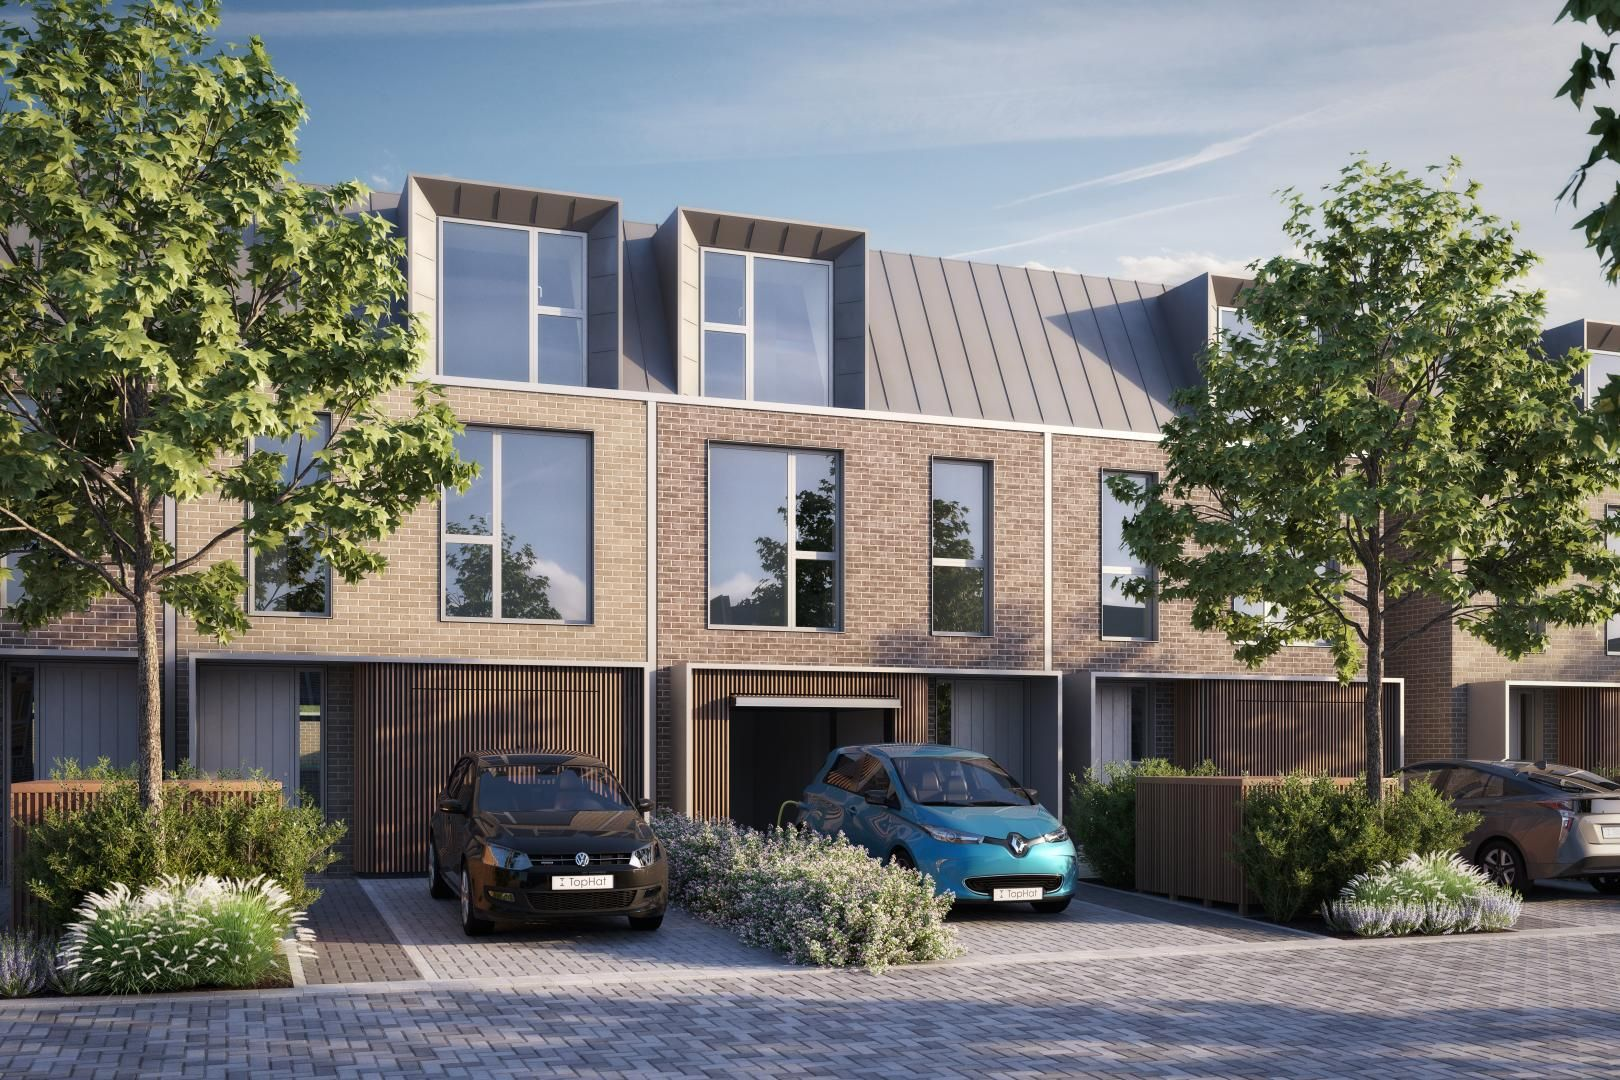 4 bed house for sale in Dock Road, ME4